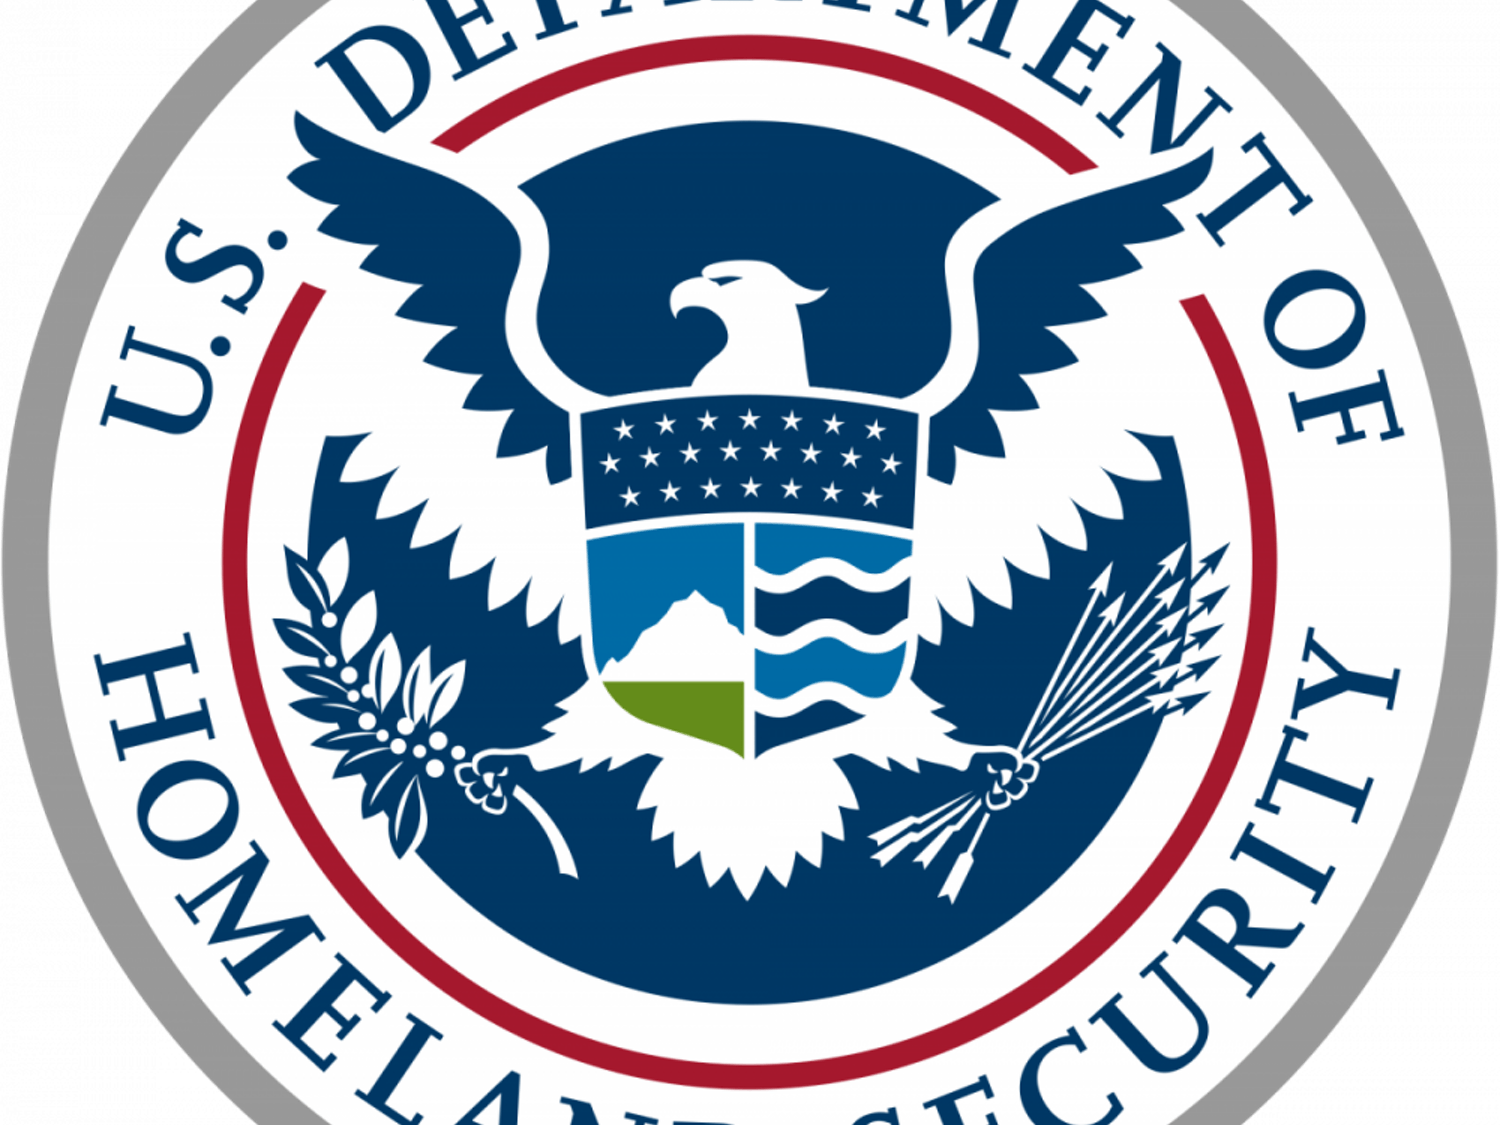 Seal_of_the_United_States_Department_of_Homeland_Security.svg_-e1487822304276